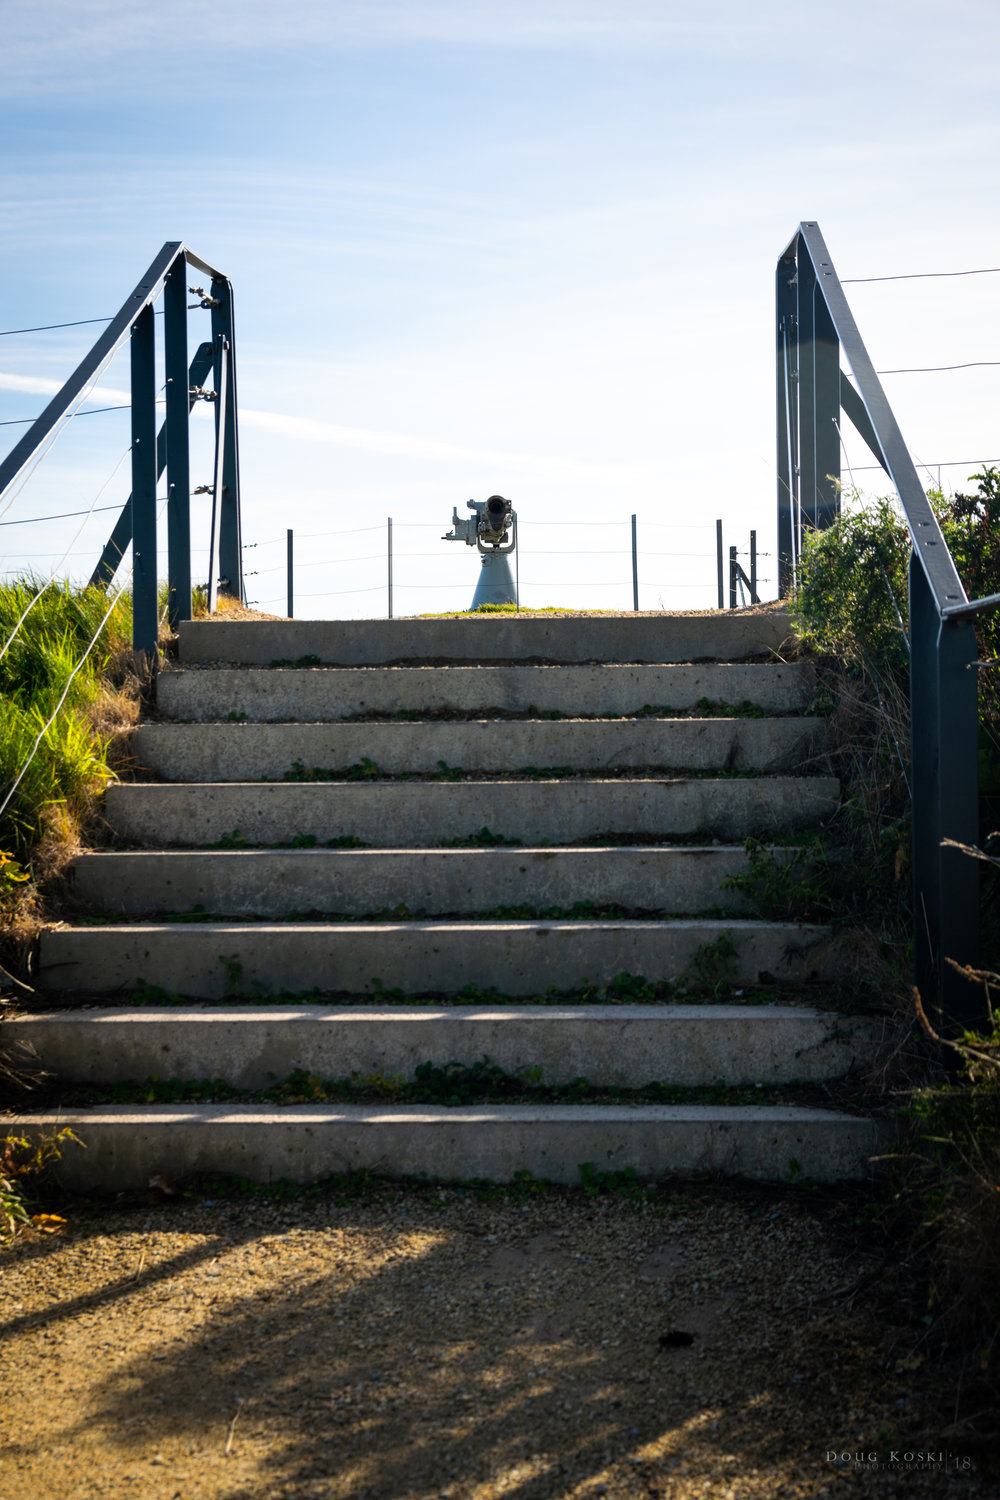 A few stairs to separate the armaments -